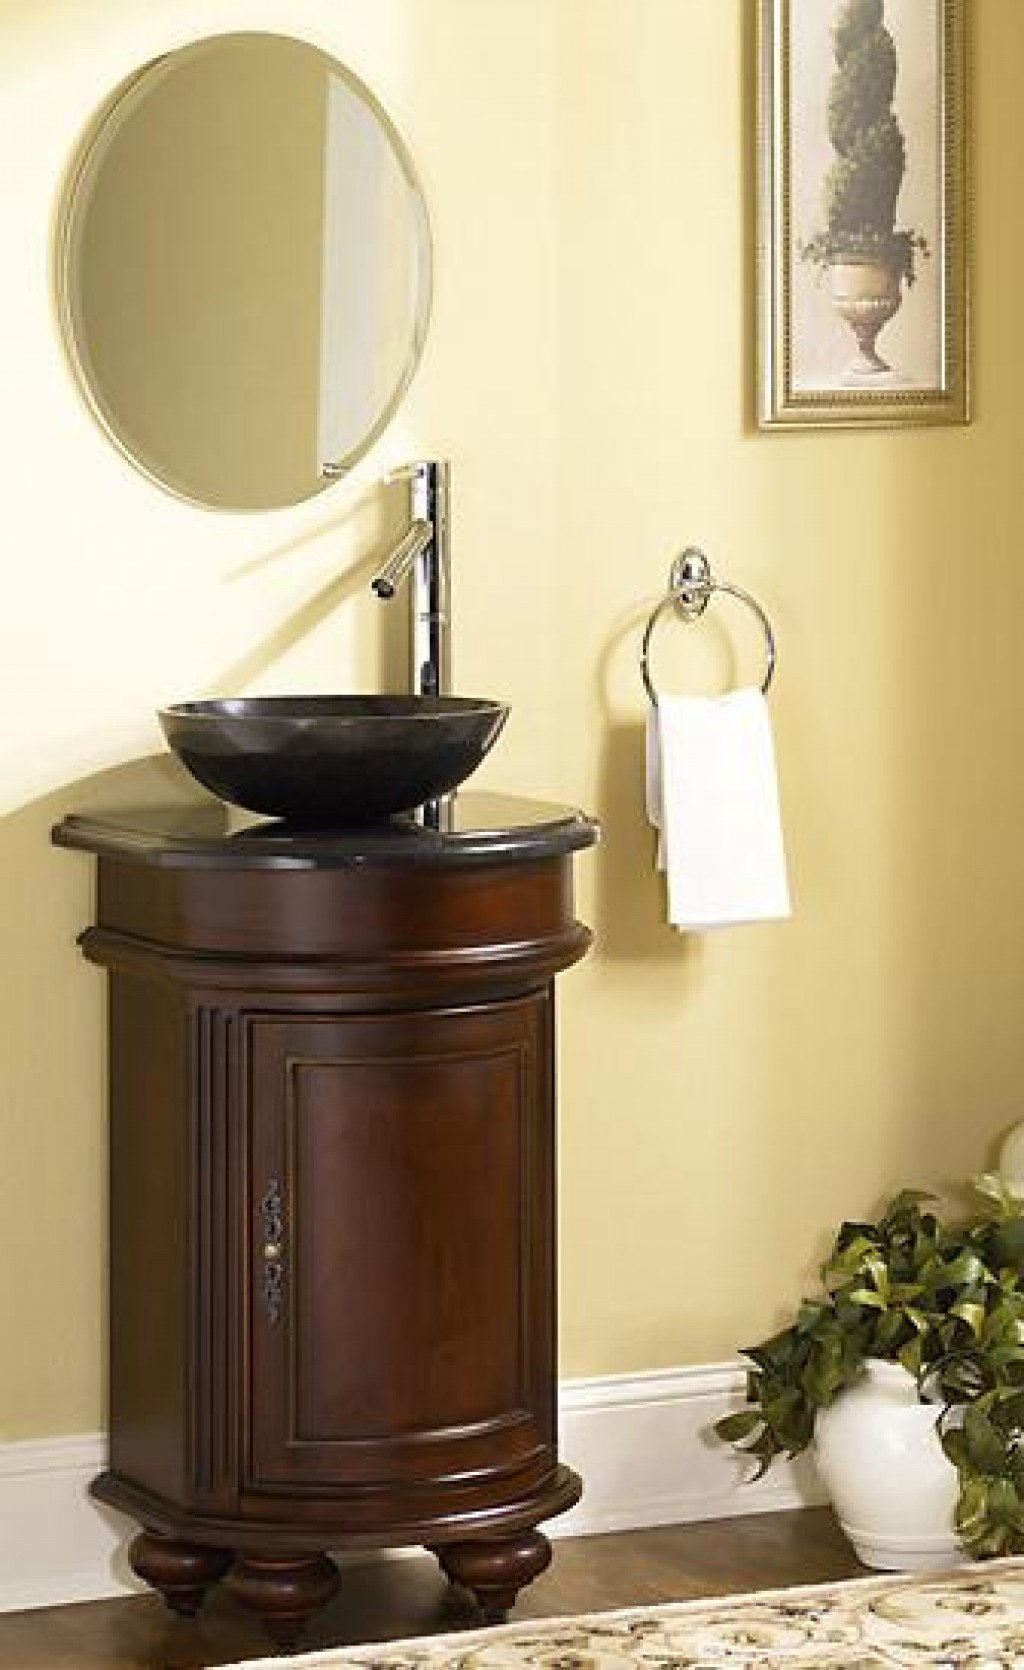 Which Sink Is Best For My Vessel Sink Vanity?